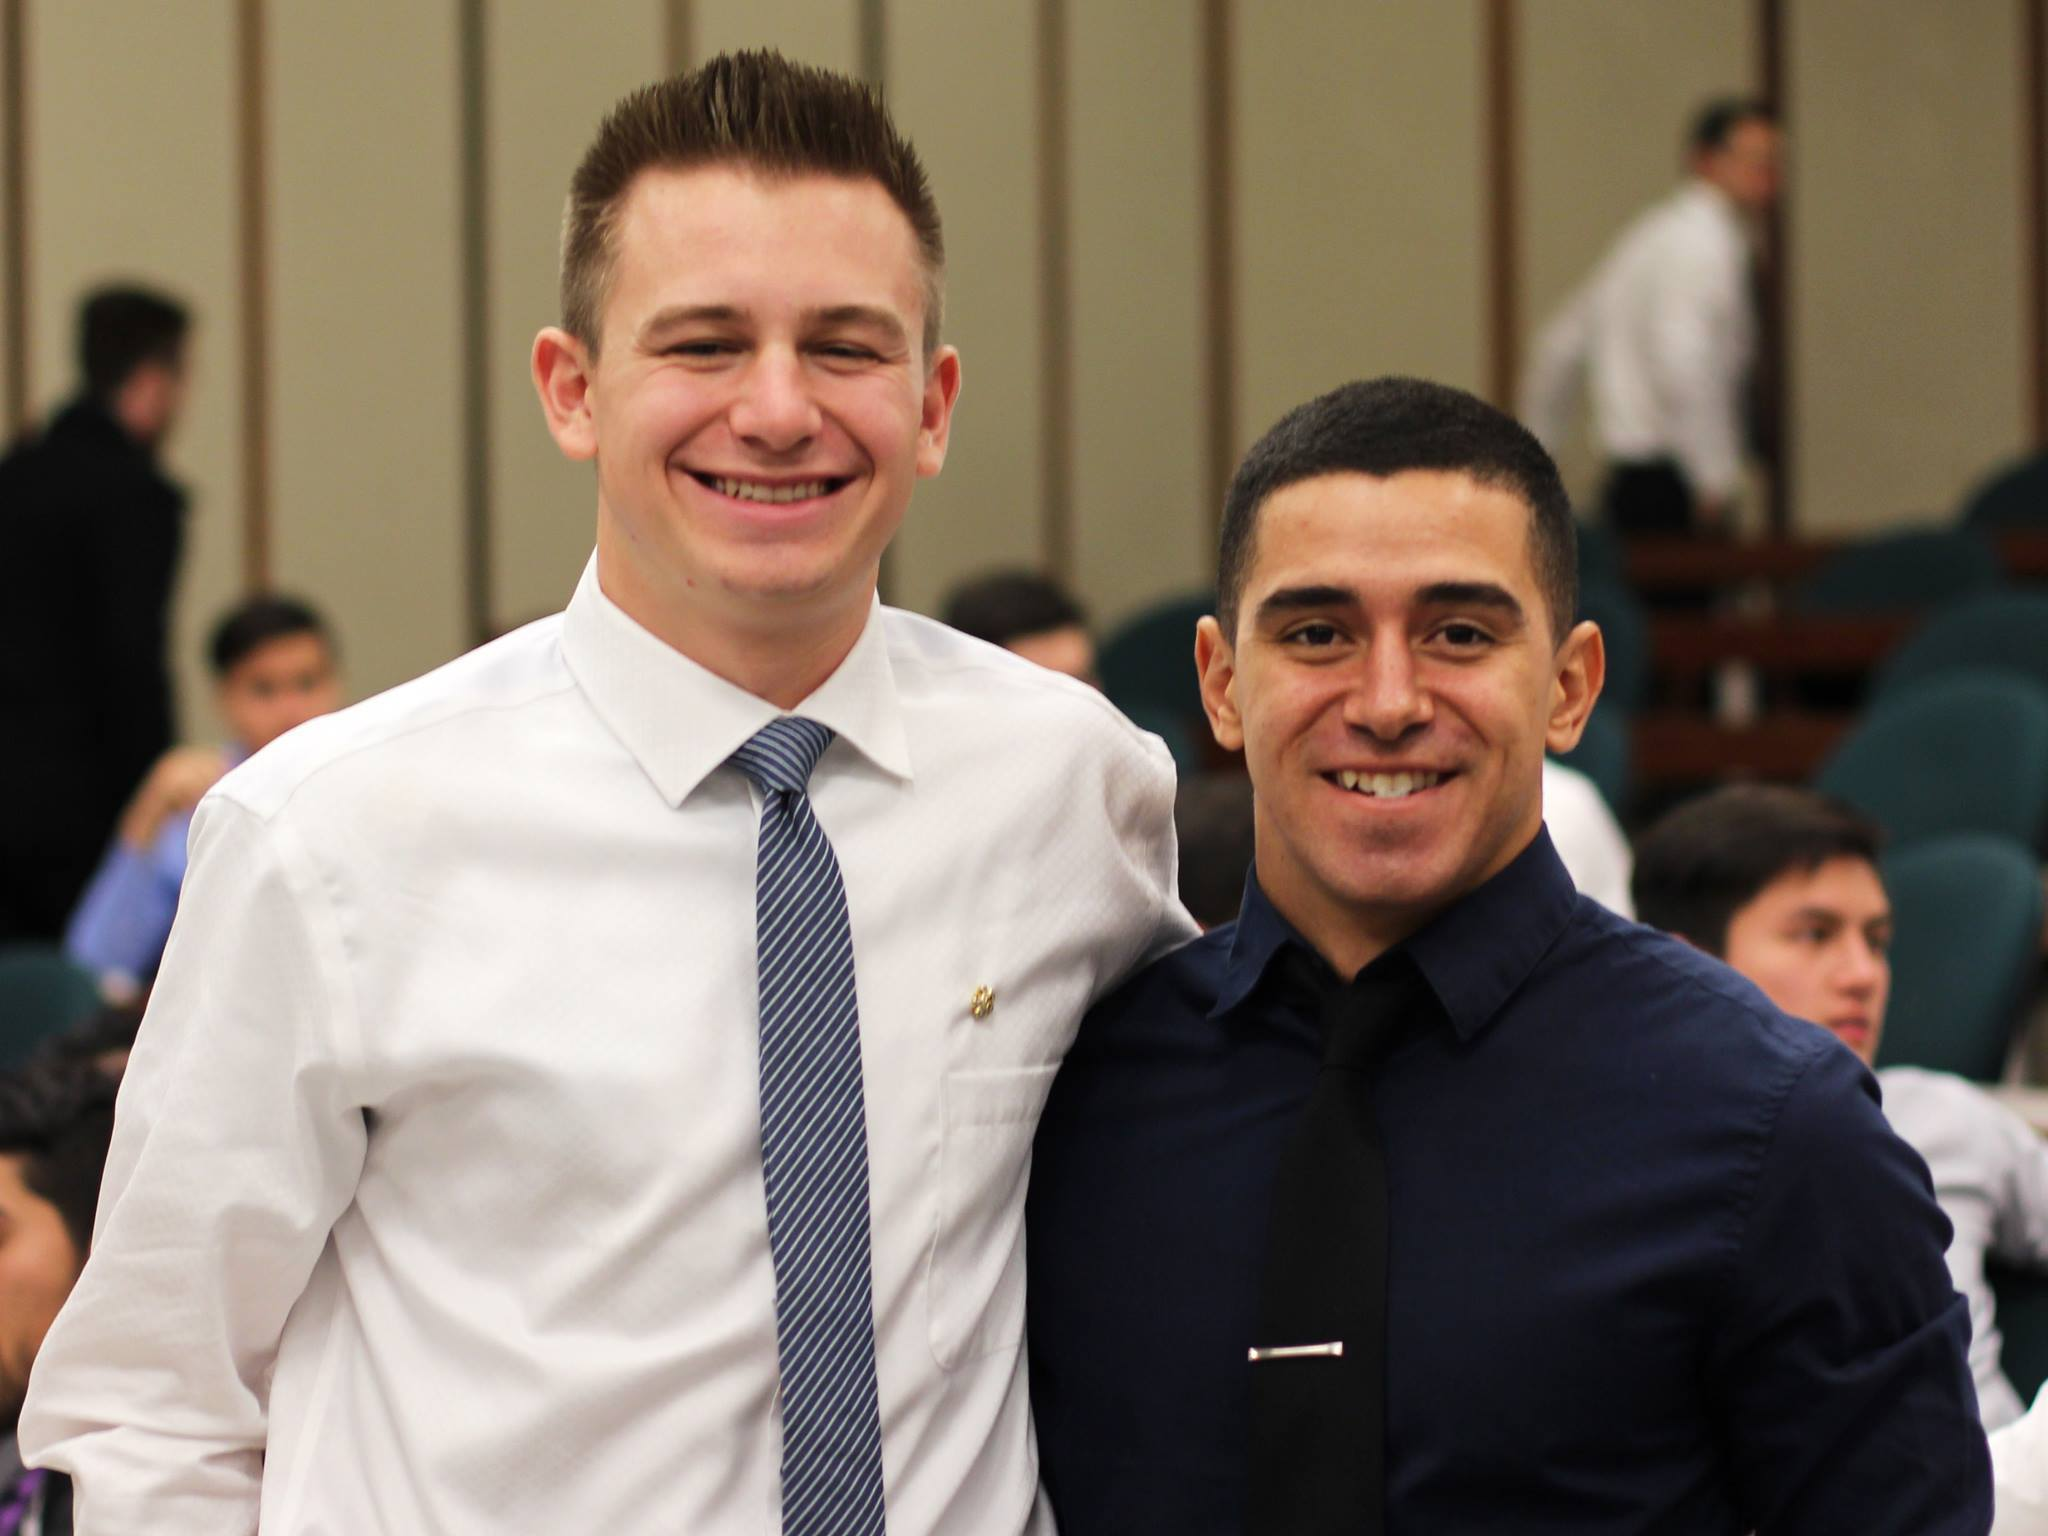 Congratulations to Sigma Nu's New Eminent Commander and Lieutenant Commander, Toby Clark and Jerry Saldivar, respectively. We're confident that with their leadership, Sigma Nu will continue to improve itself and our surrounding Davis community!